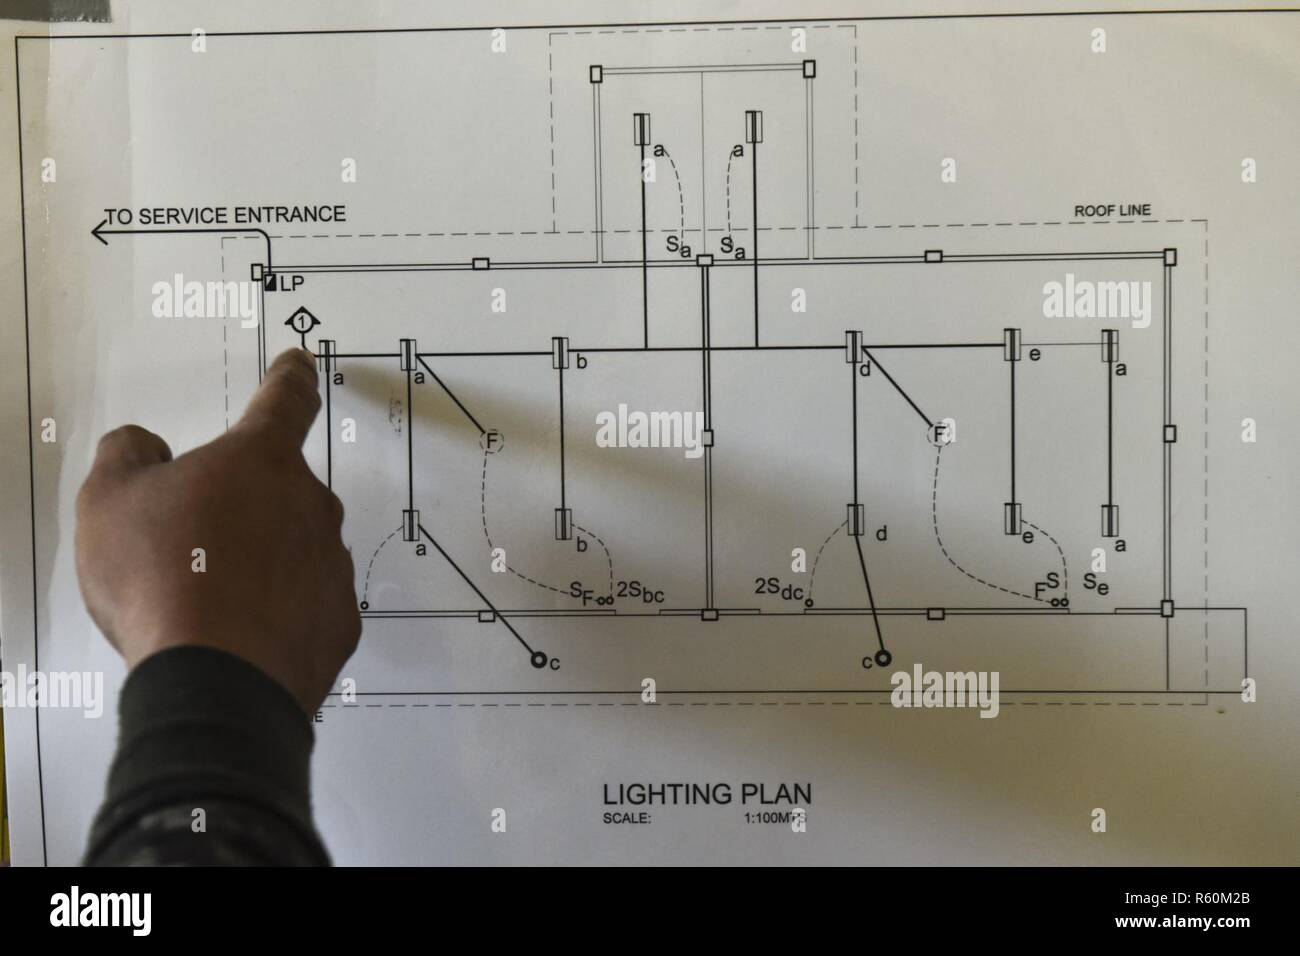 hight resolution of electrical plans stock photos electrical plans stock images alamy armed forces of the philippines and